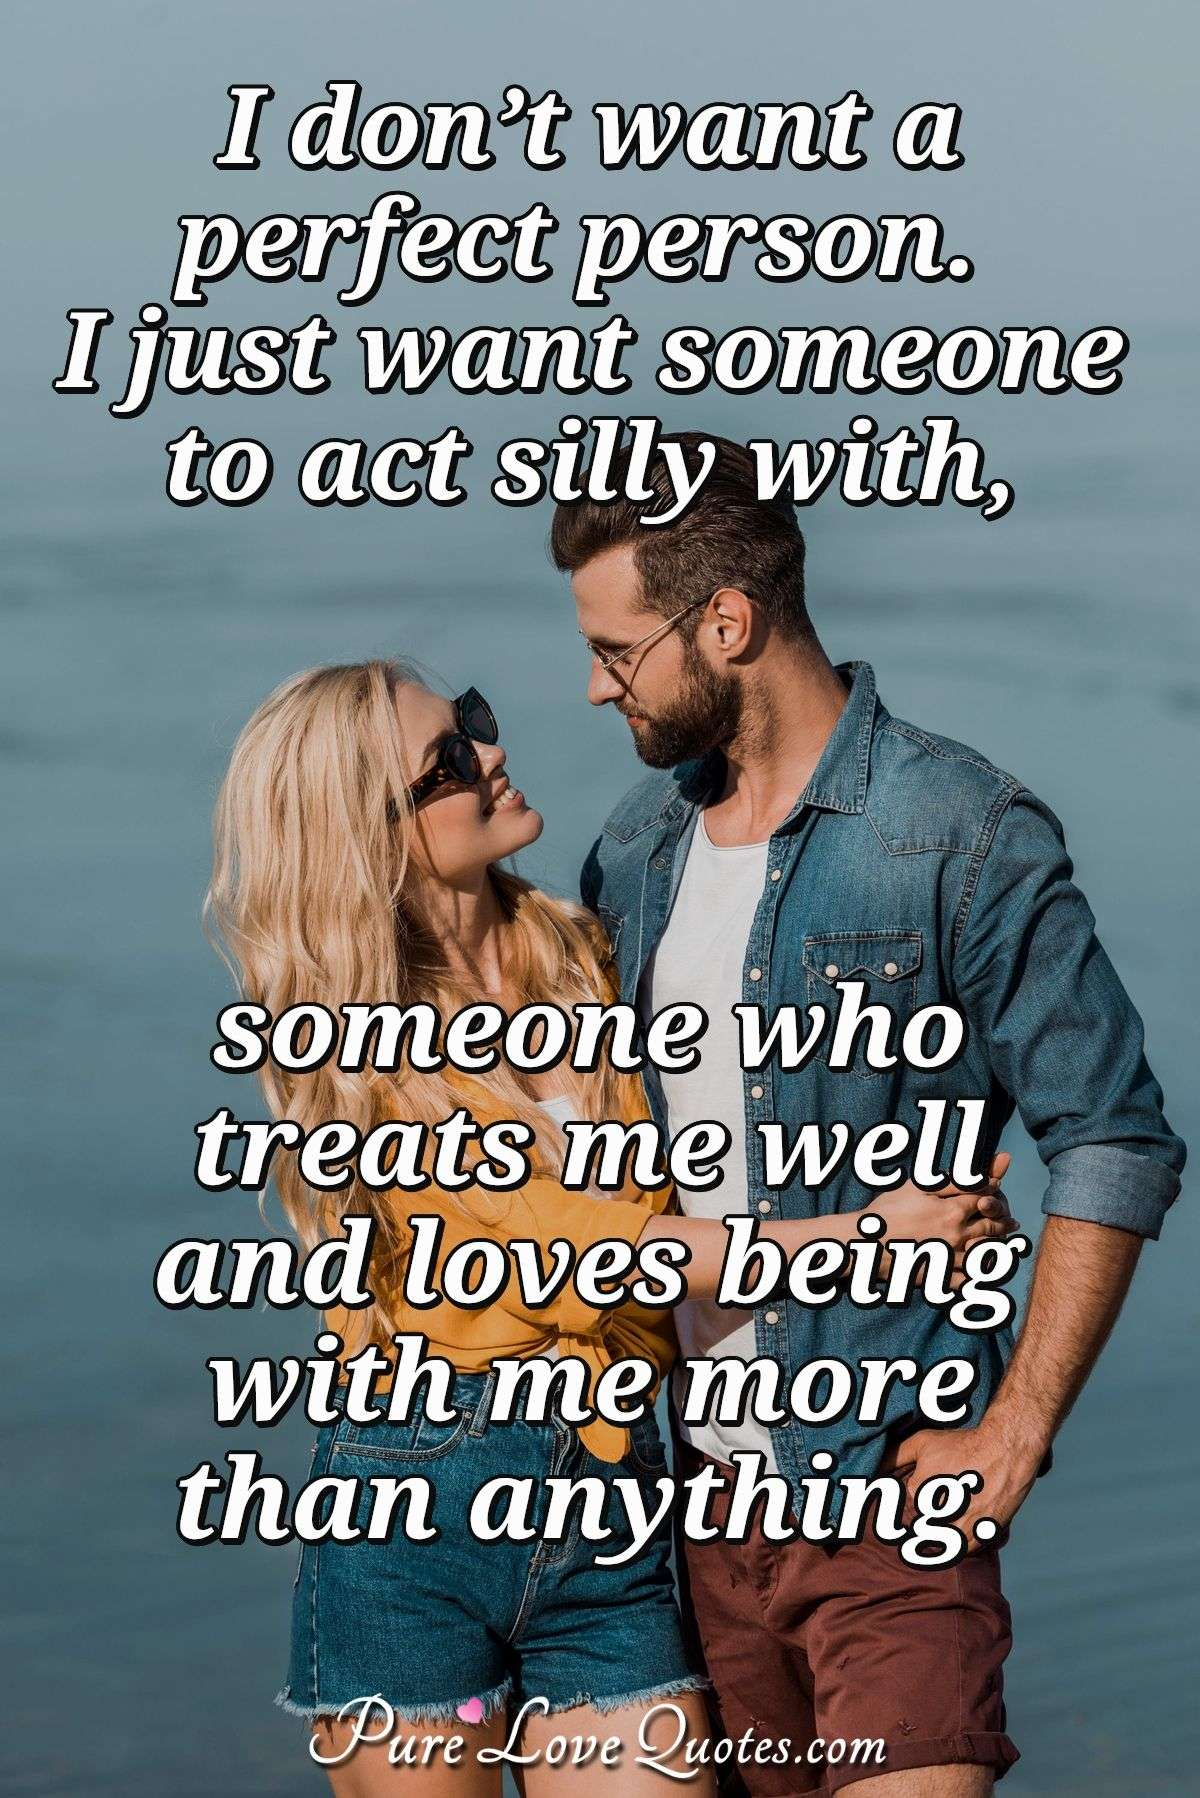 I don't want a perfect person. I just want someone to act silly with, someone who treats me well, and loves being with me more than anything. - Anonymous